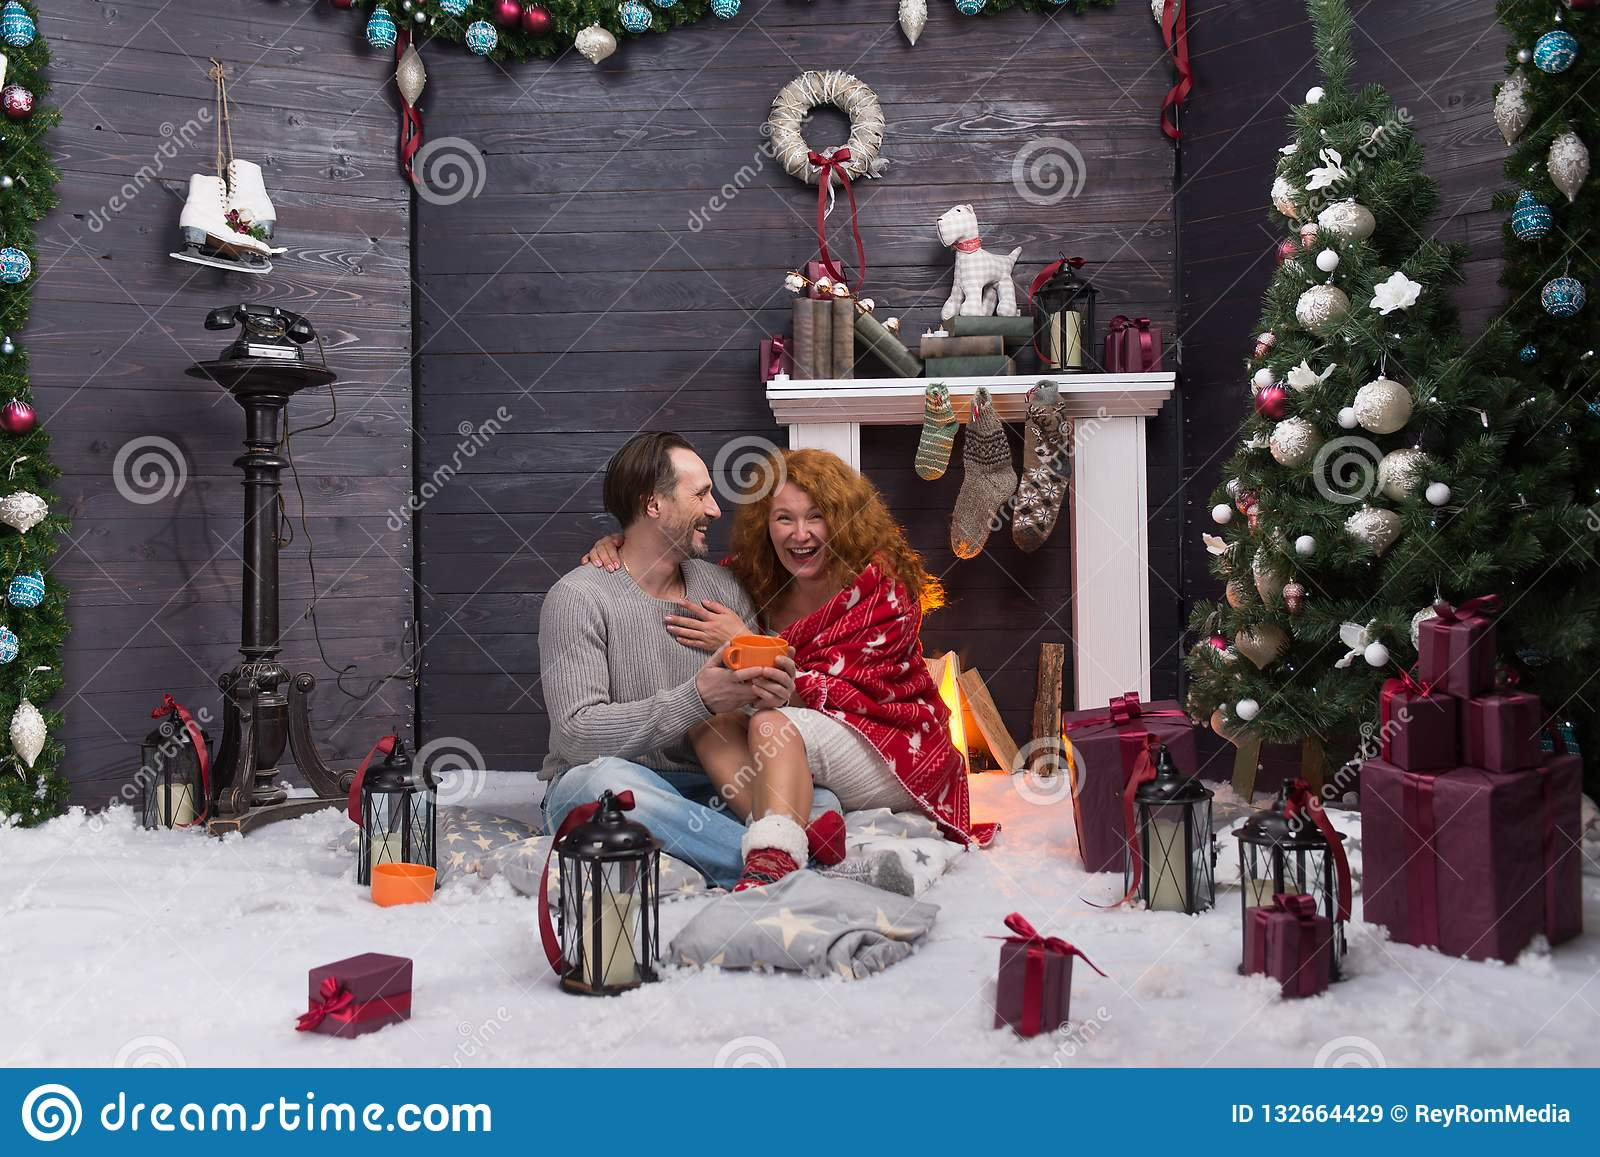 Two romantic people laughing while celebrating New Year near the fireplace